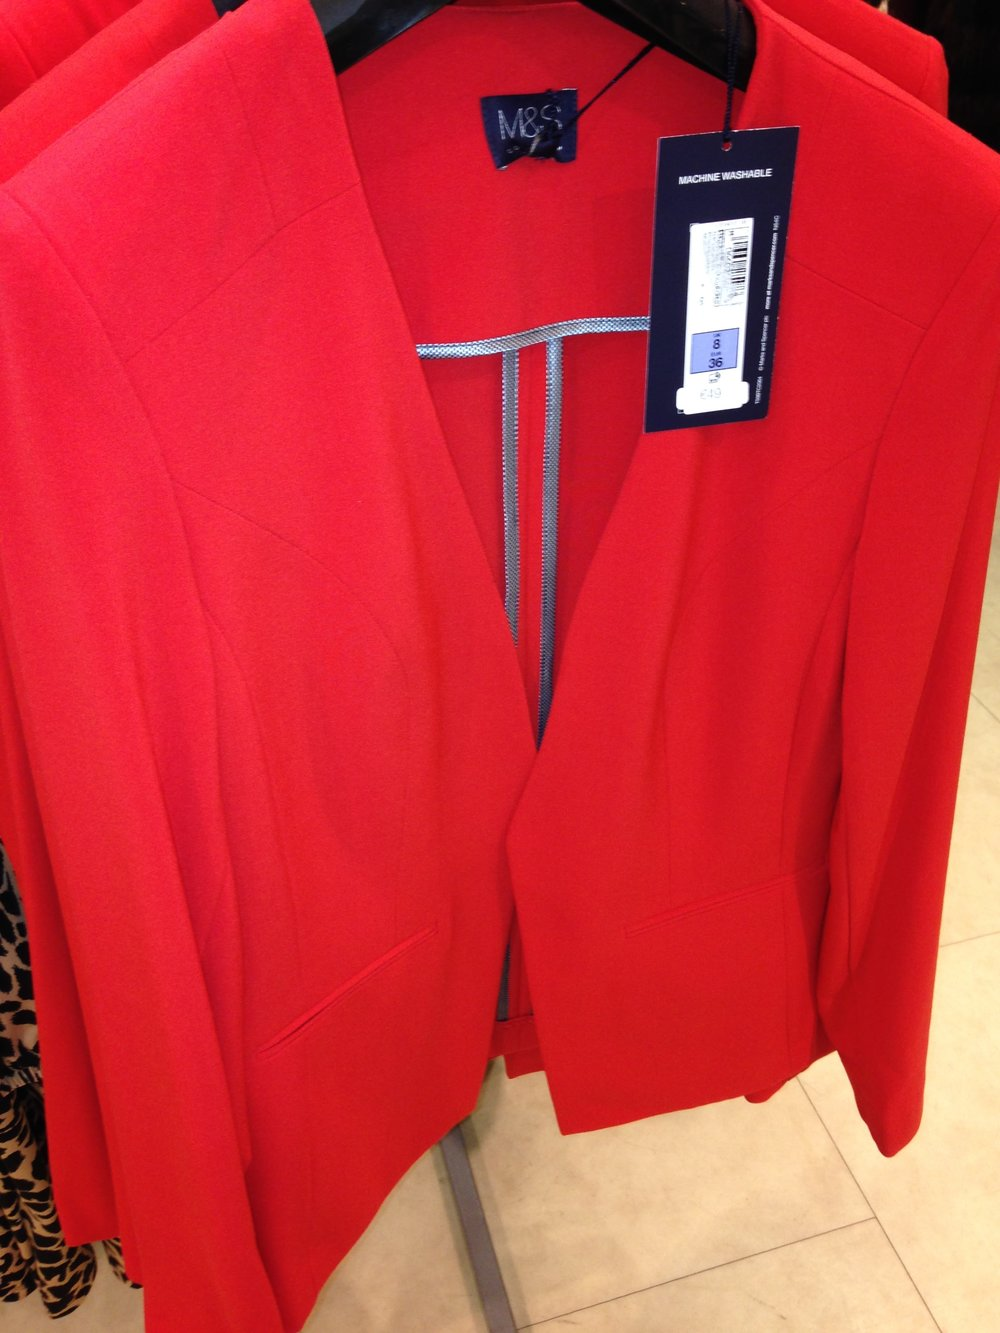 Vibrant Orange jacket also M&S. Great Buy at €49.00